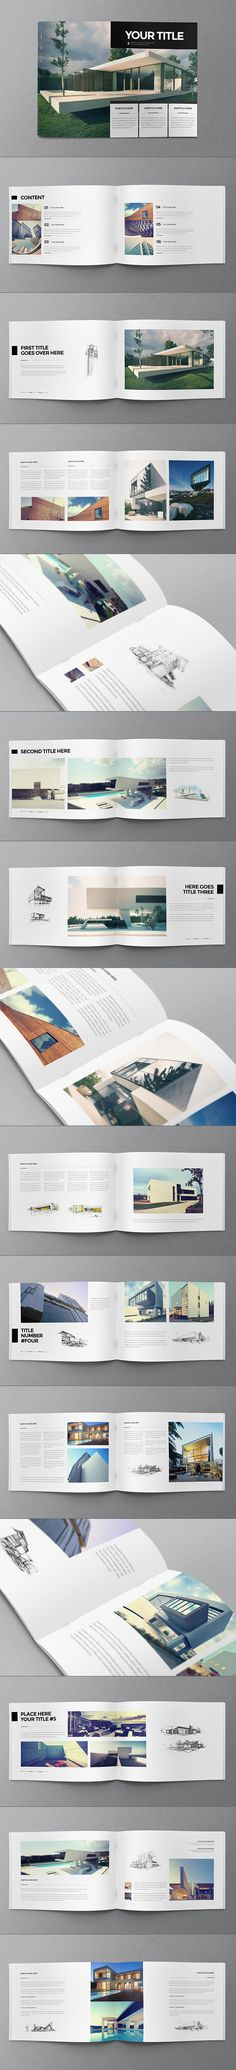 Minimal Architecture Brochure on Behance